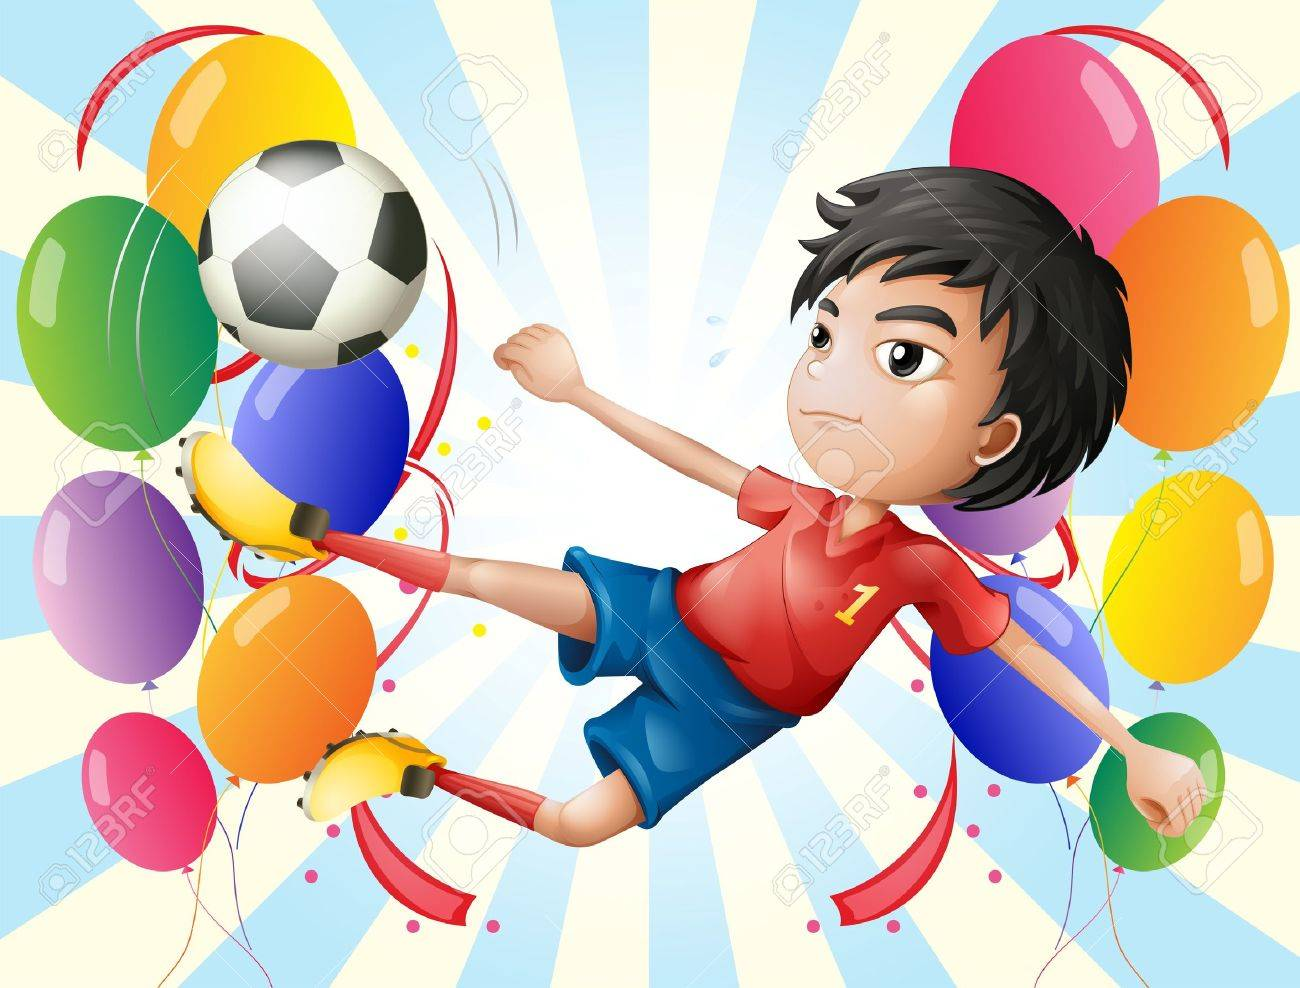 Illustration of a soccer player with balloons Stock Vector - 18390415